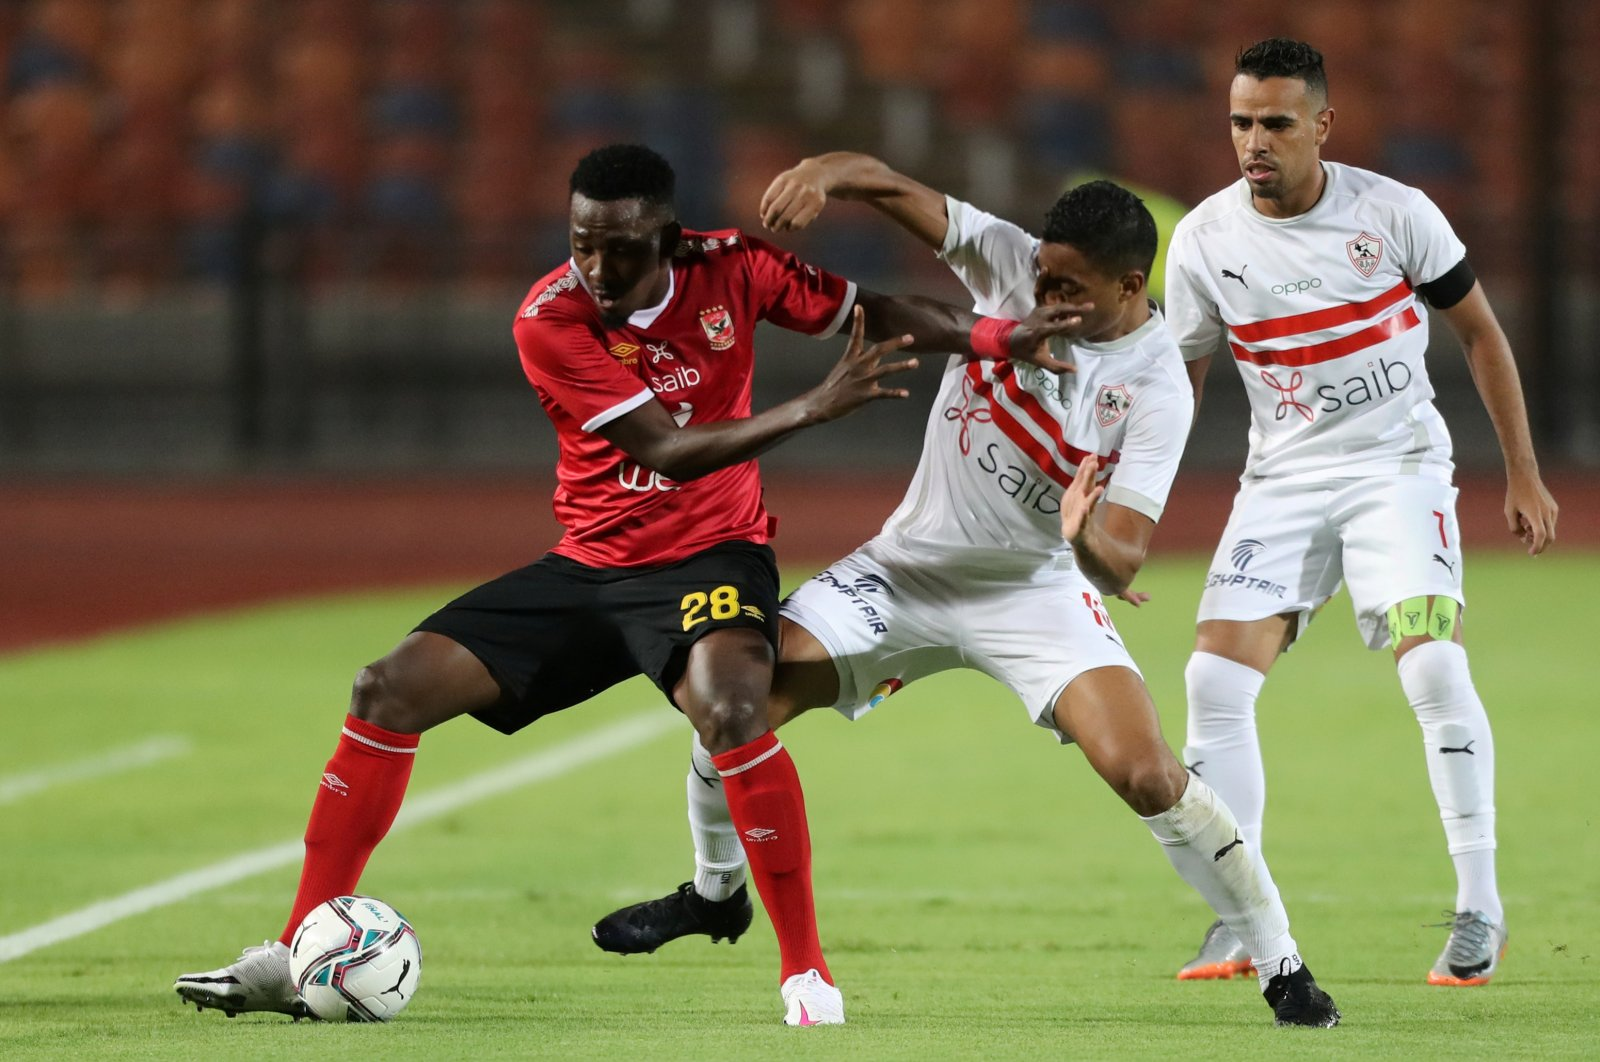 Al Ahly's Junior Ajayi (L) in action with Zamalek's Mostafa Mohamed Ahmed Abdalla during an Egyptian Premier League match in Cairo, Egypt, Aug. 22, 2020. (Reuters Photo)